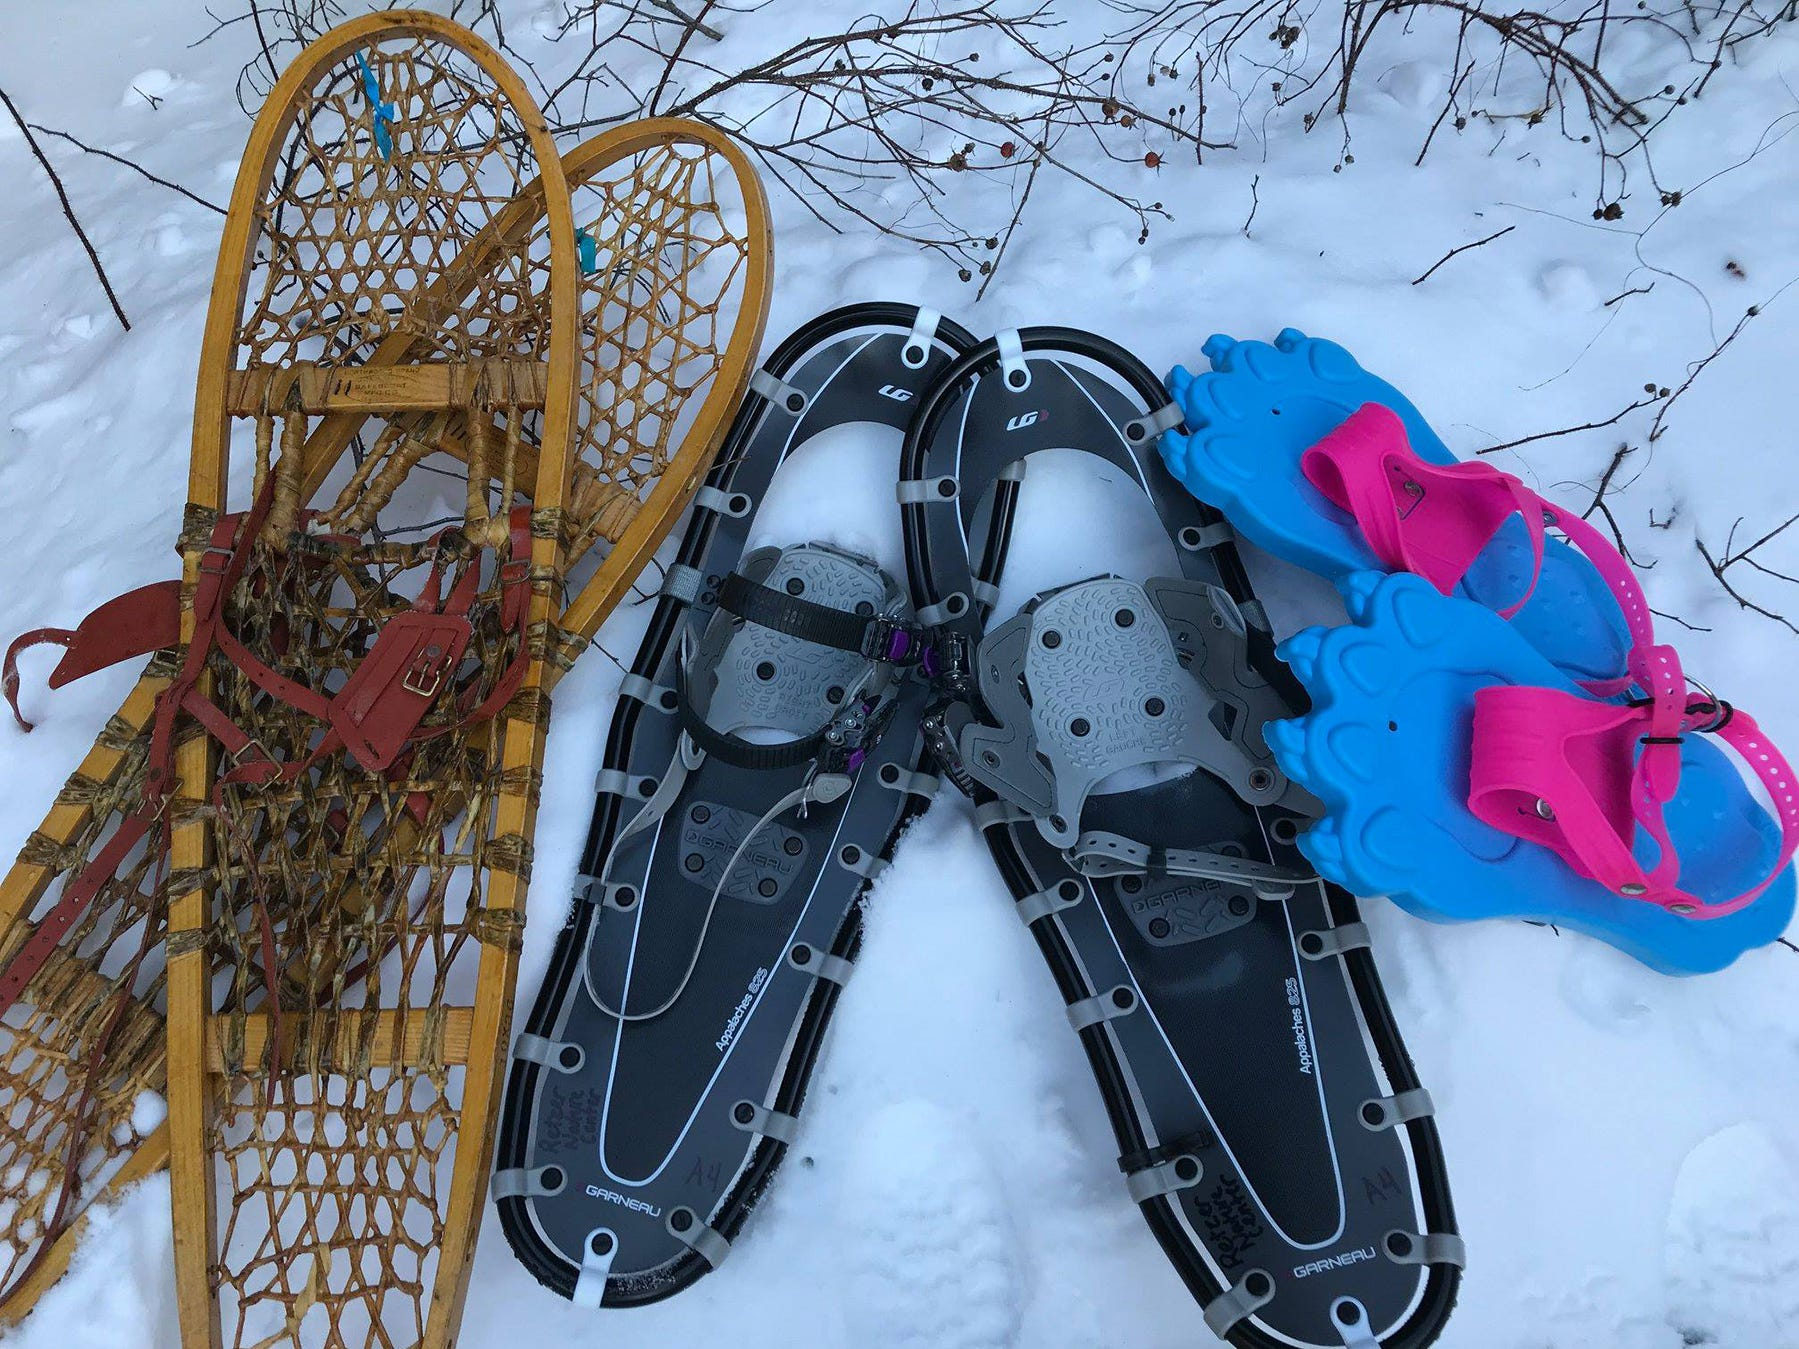 Retzer Nature Center has a variety of traditional Native American-style snowshoes, and modern types, said Janet Barthel, supervisor of Retzer Nature Center in Waukesha.